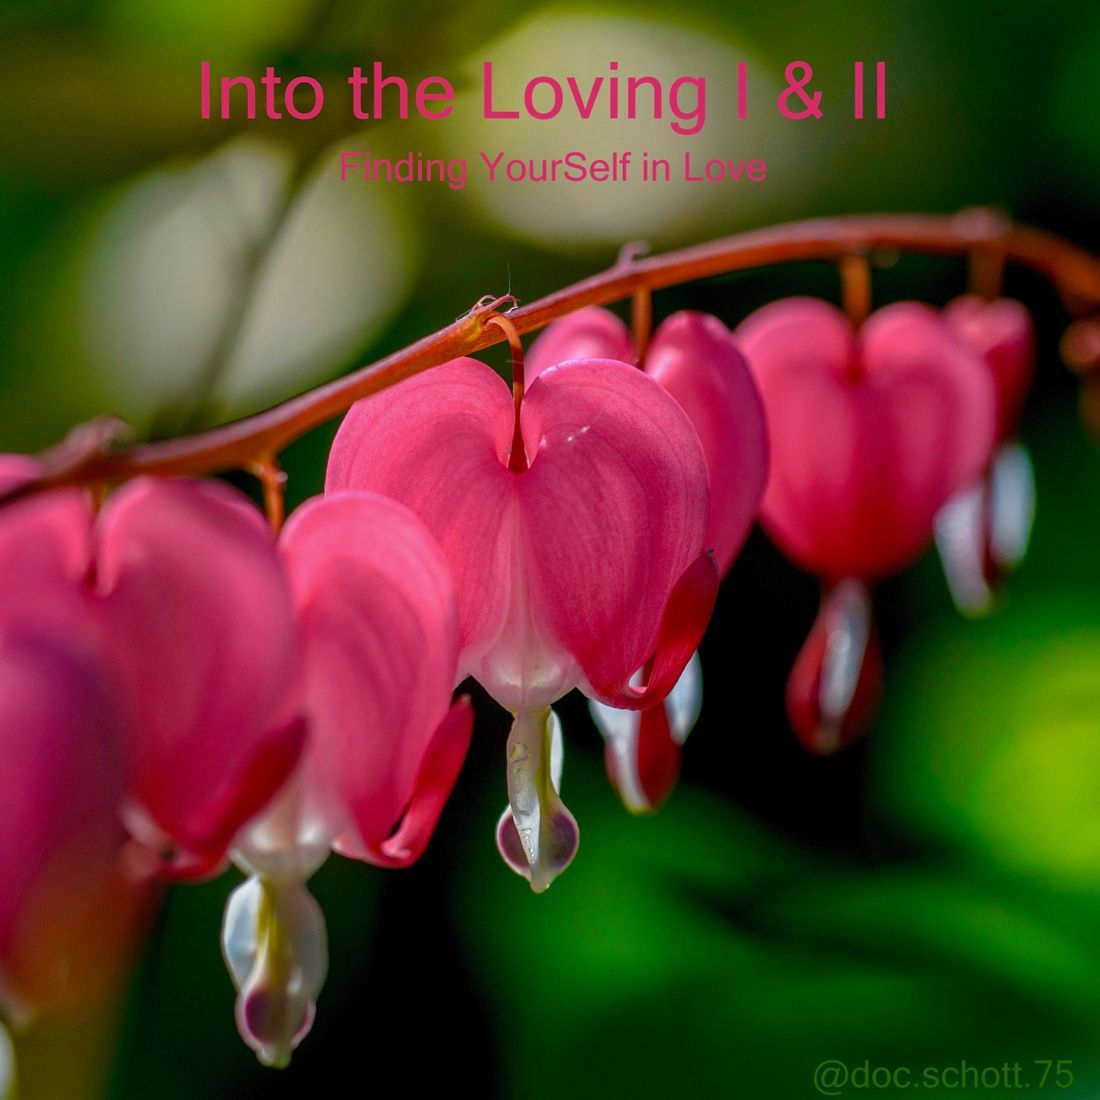 'Into the Loving': a program on self-love, self-acceptance, heart coherence, heart-centered living, and claiming Love as a way of life.